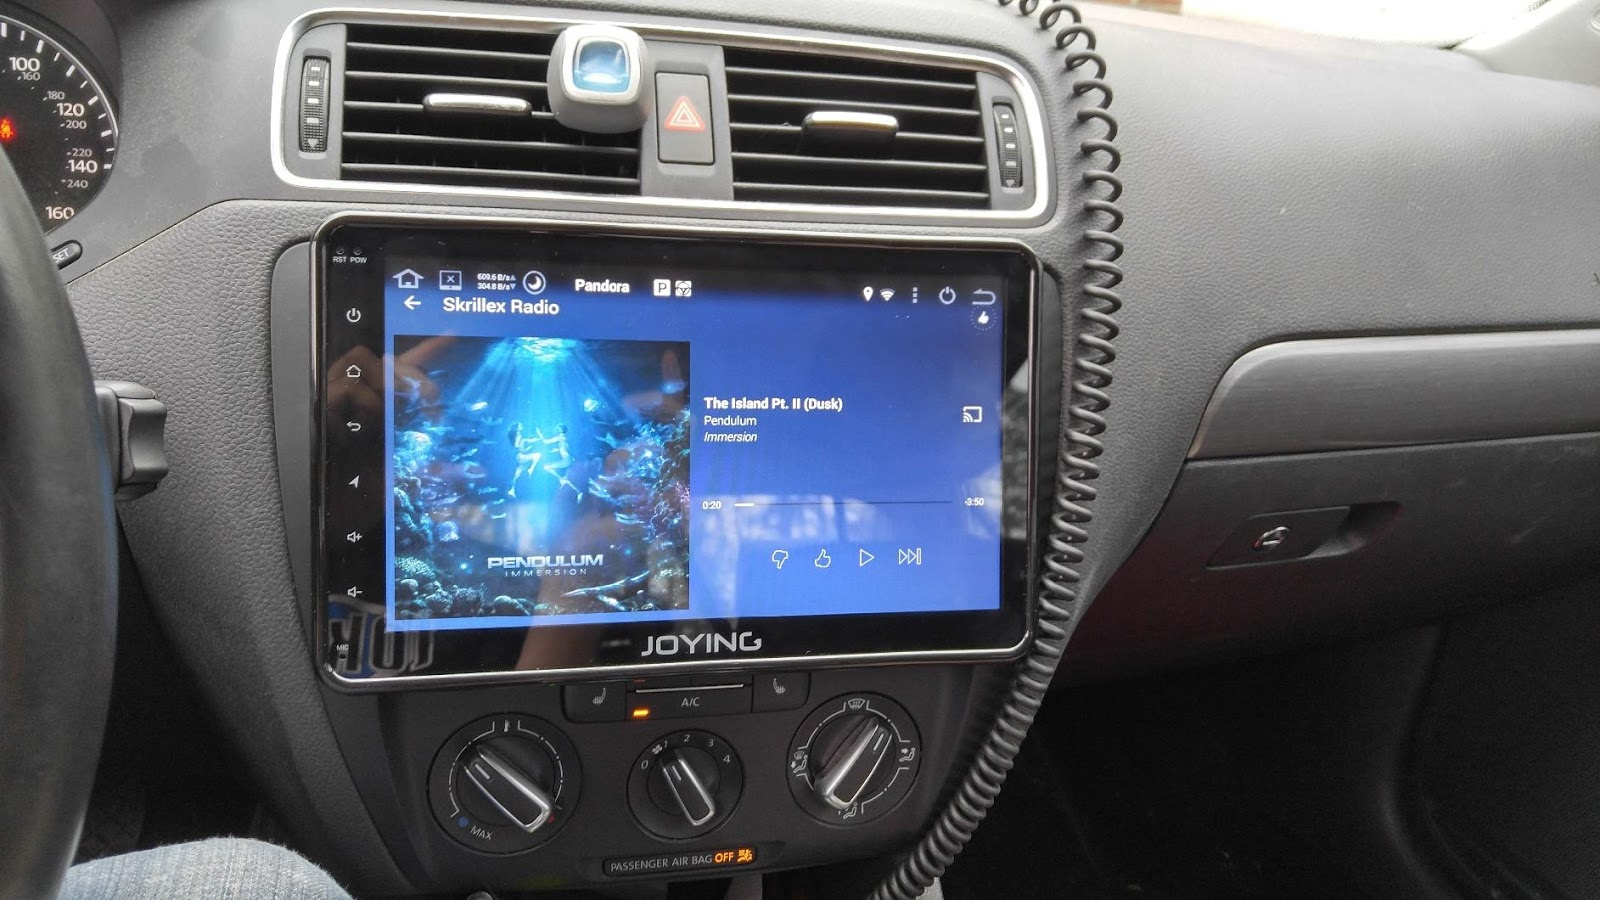 Joying Android Car Stereo Updated A Video For This Unit